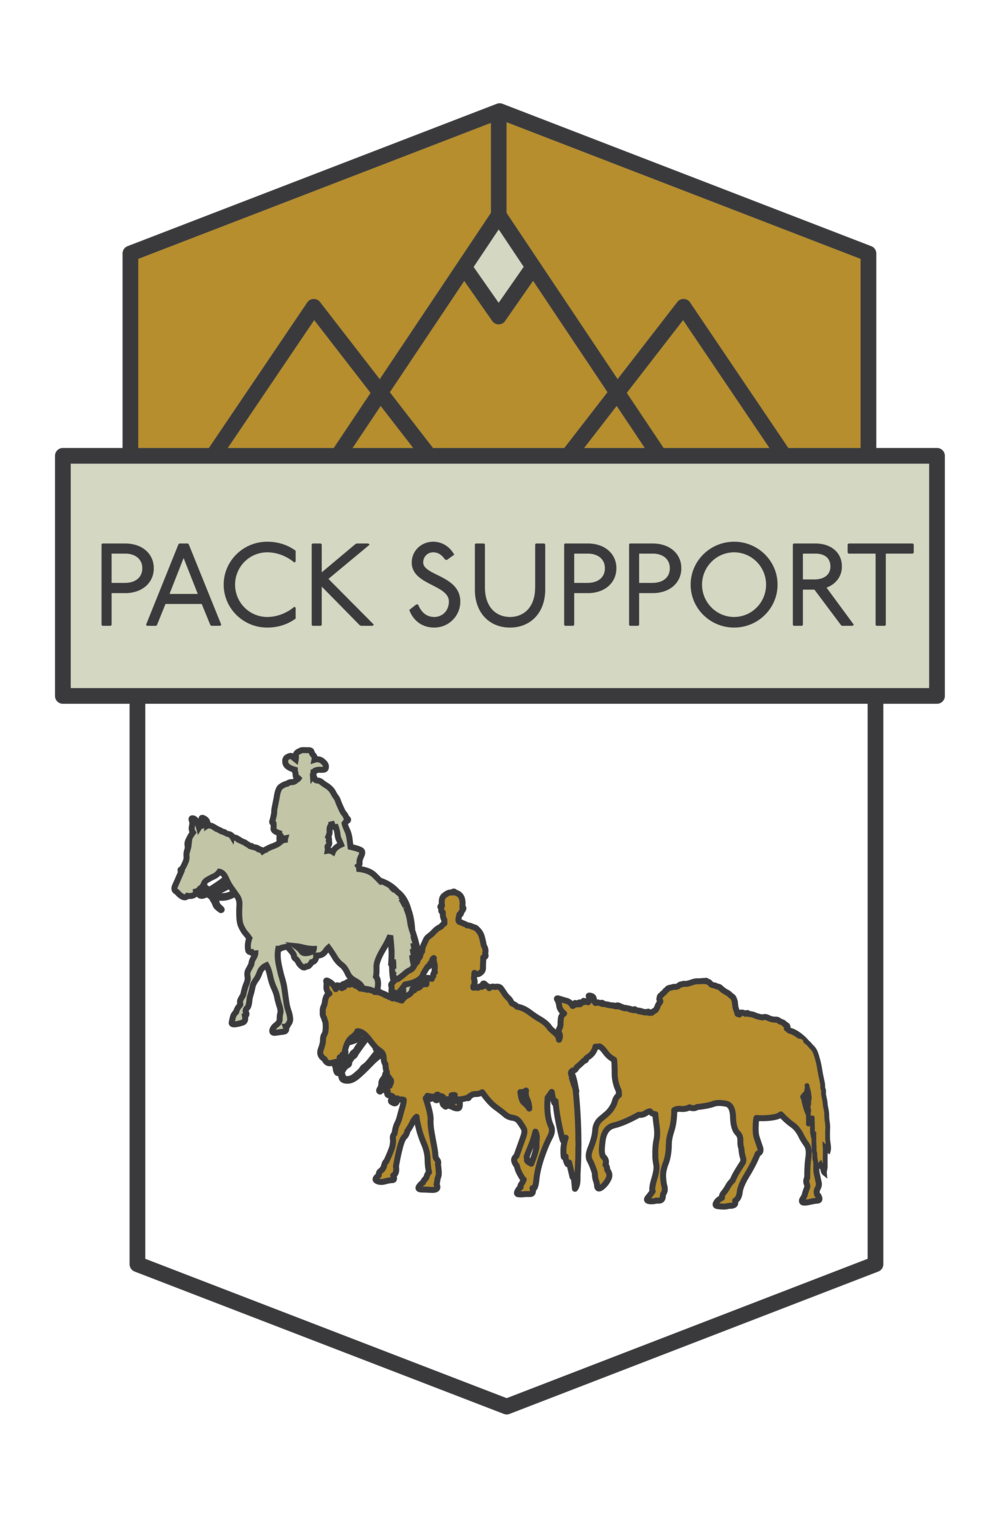 Pack Support.png